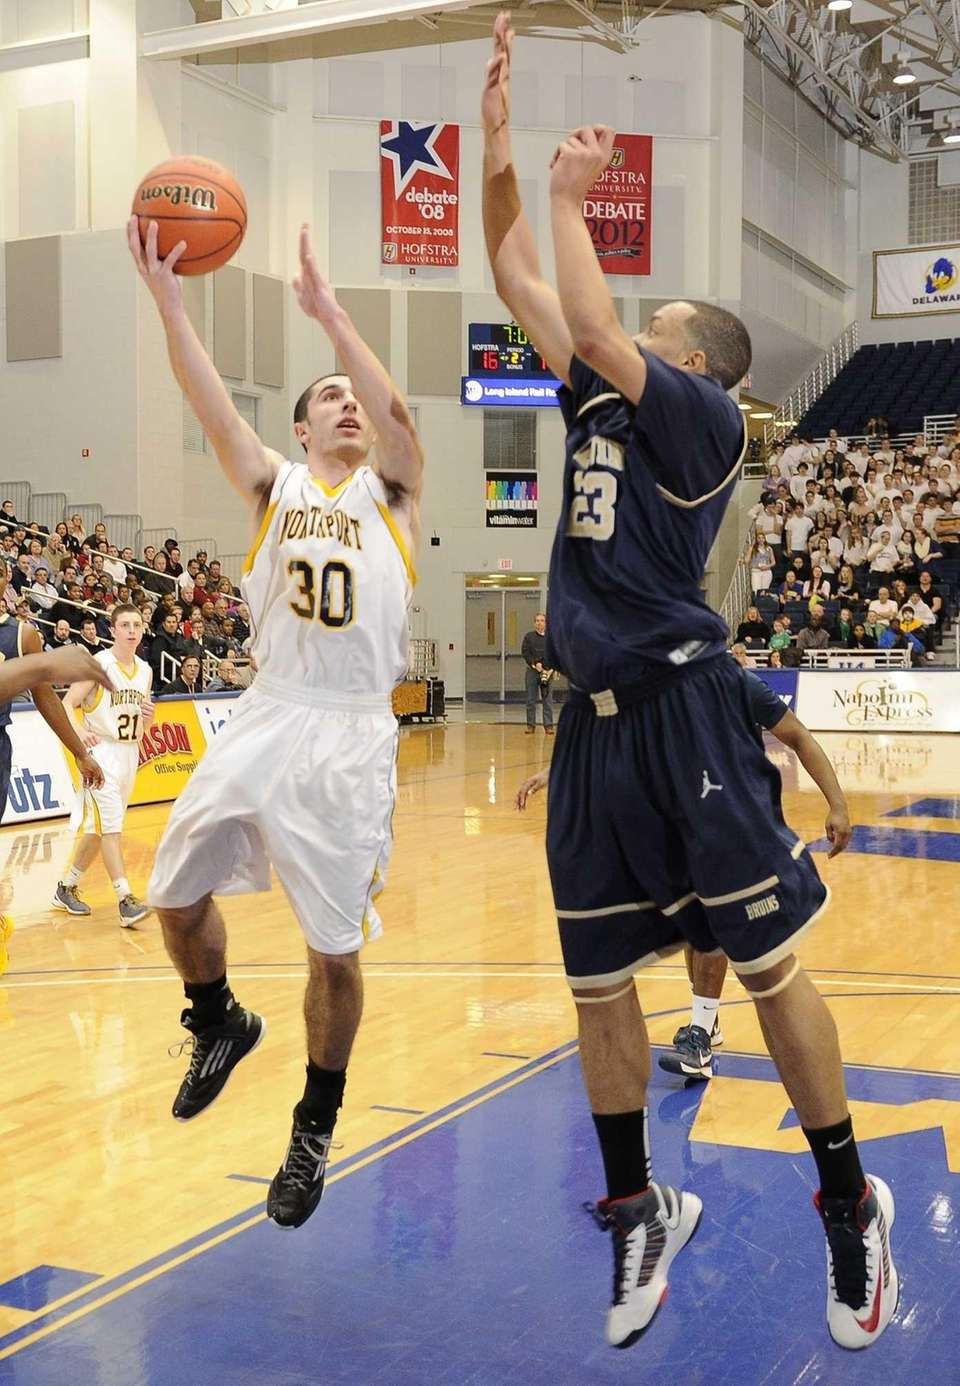 Northport's Matt Smith sinks a layup against Baldwin's